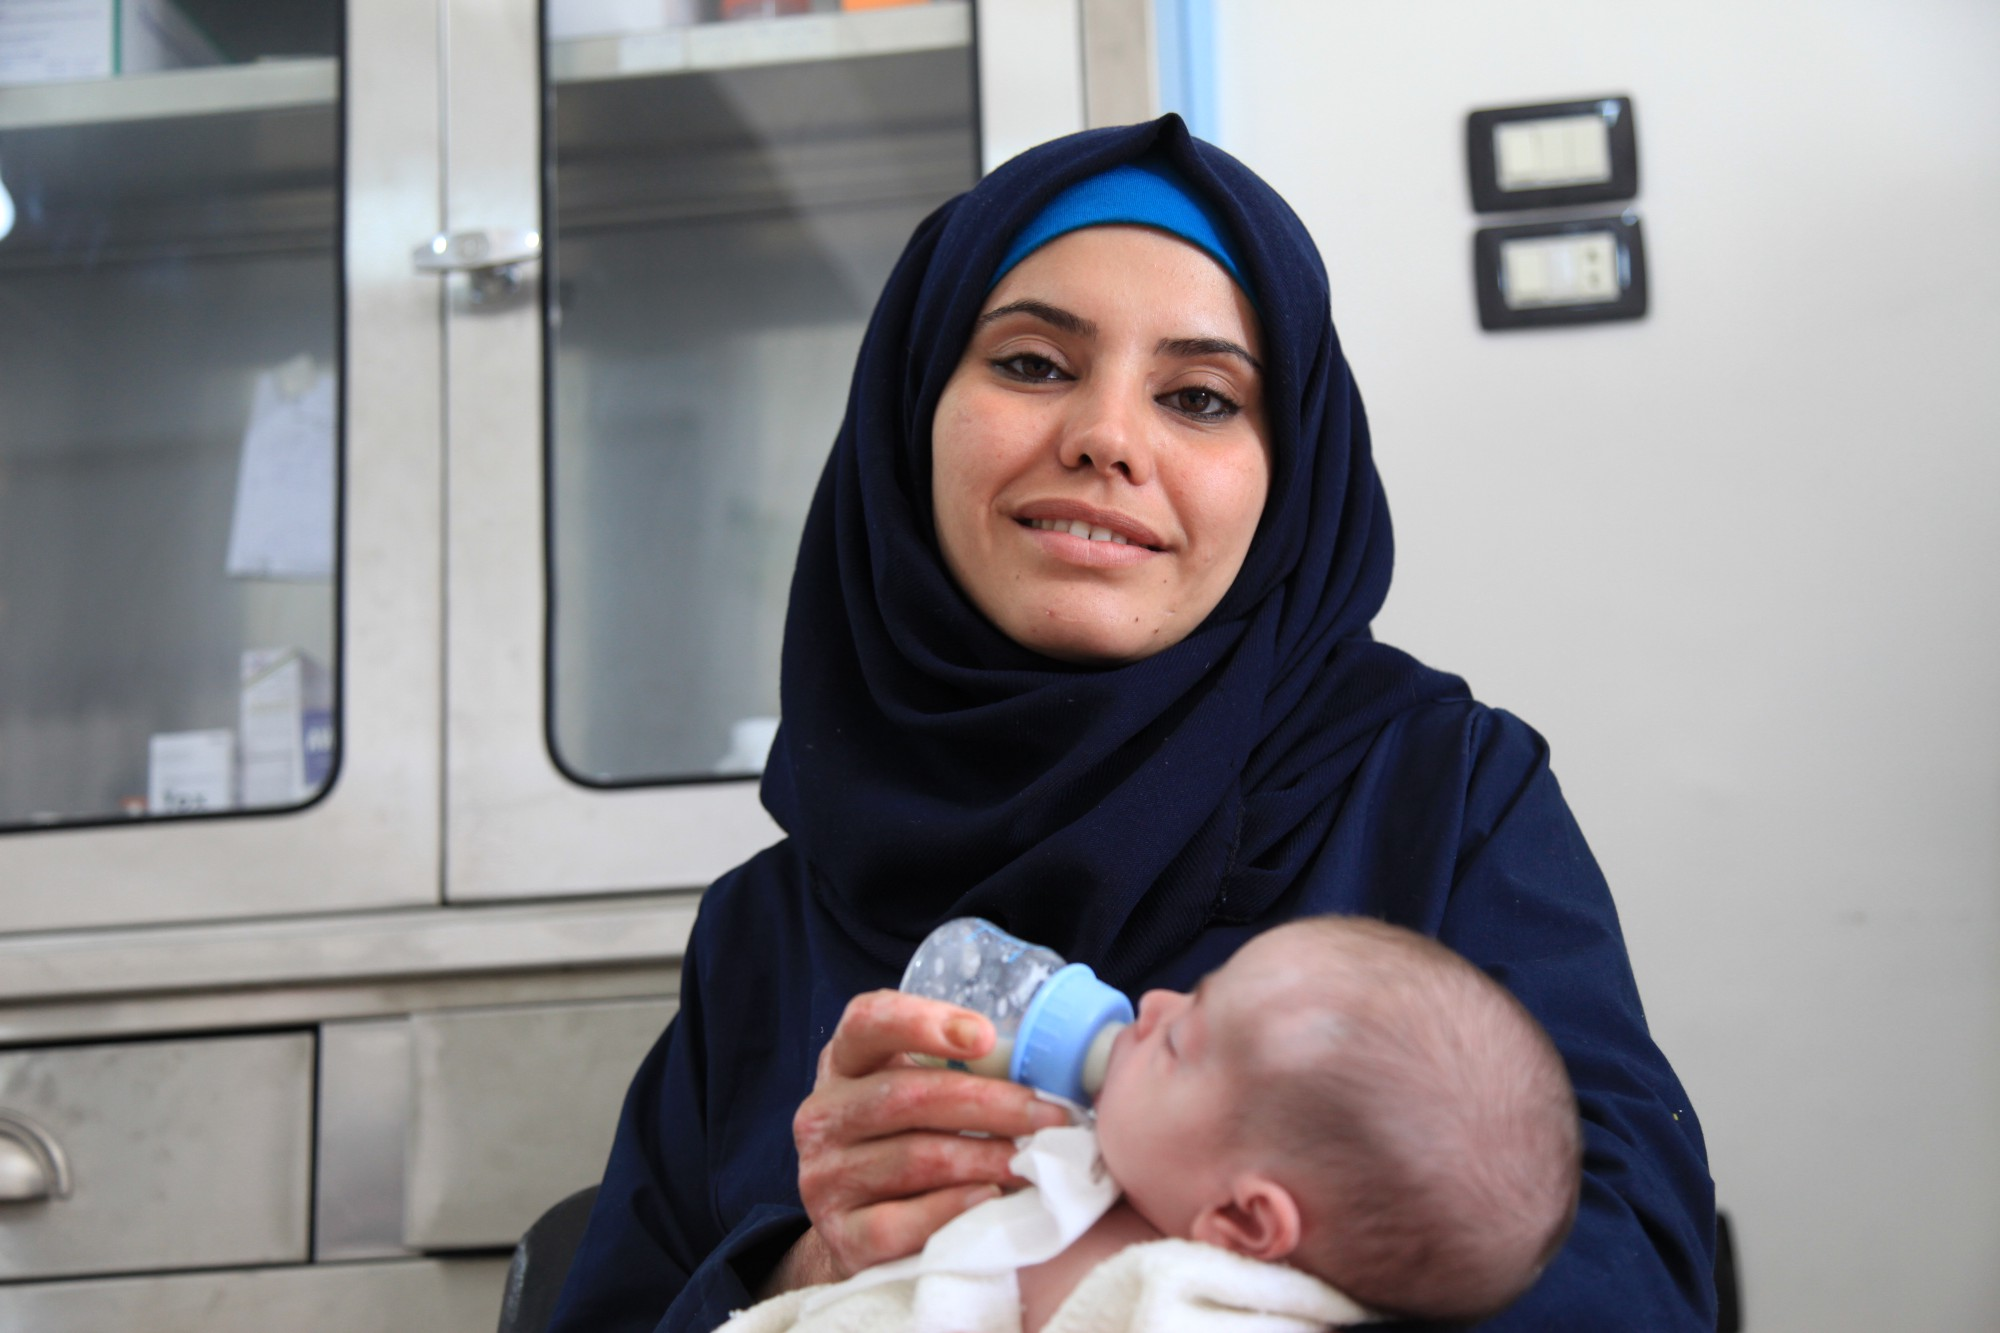 Malak, head nurse at Hope Hospital in Syria—the first hospital funded by Rola Hallam's humanitarian-support organization CanDo . All photos courtesy of Rola Hallam.